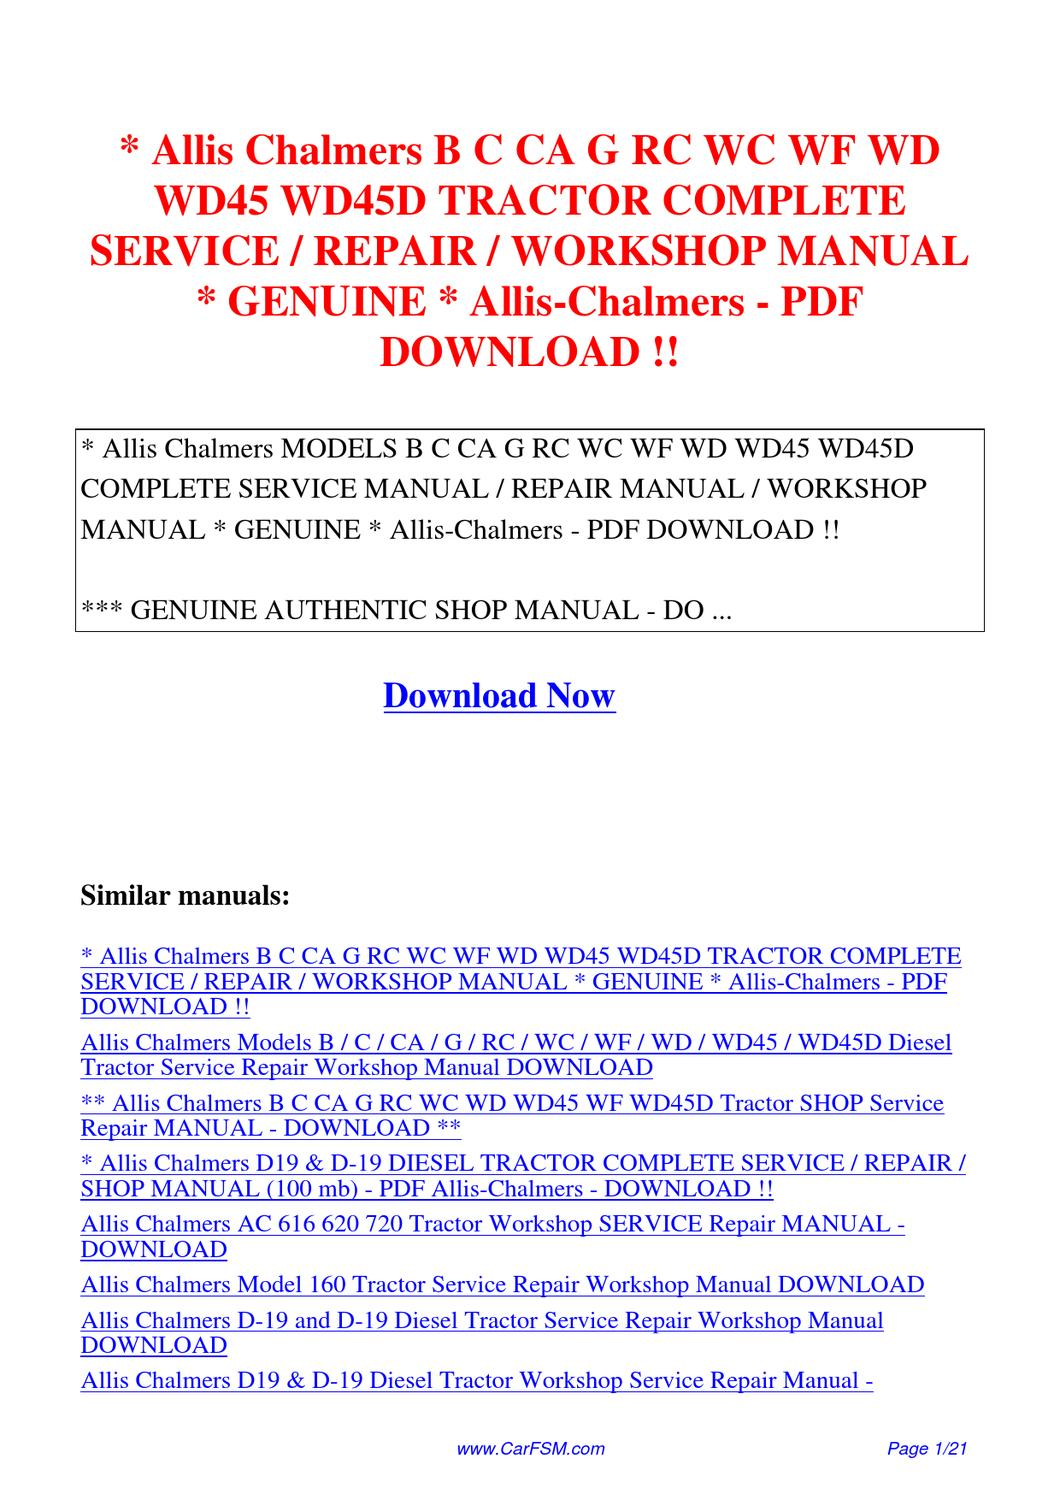 Allis_Chalmers_B_C_CA_G_RC_WC_WF_WD_WD45_WD45D_TRACTOR_COMPLETE_SERVICE_REPAIR_WORKSHOP_MANUAL  by Hui Zhang - issuu